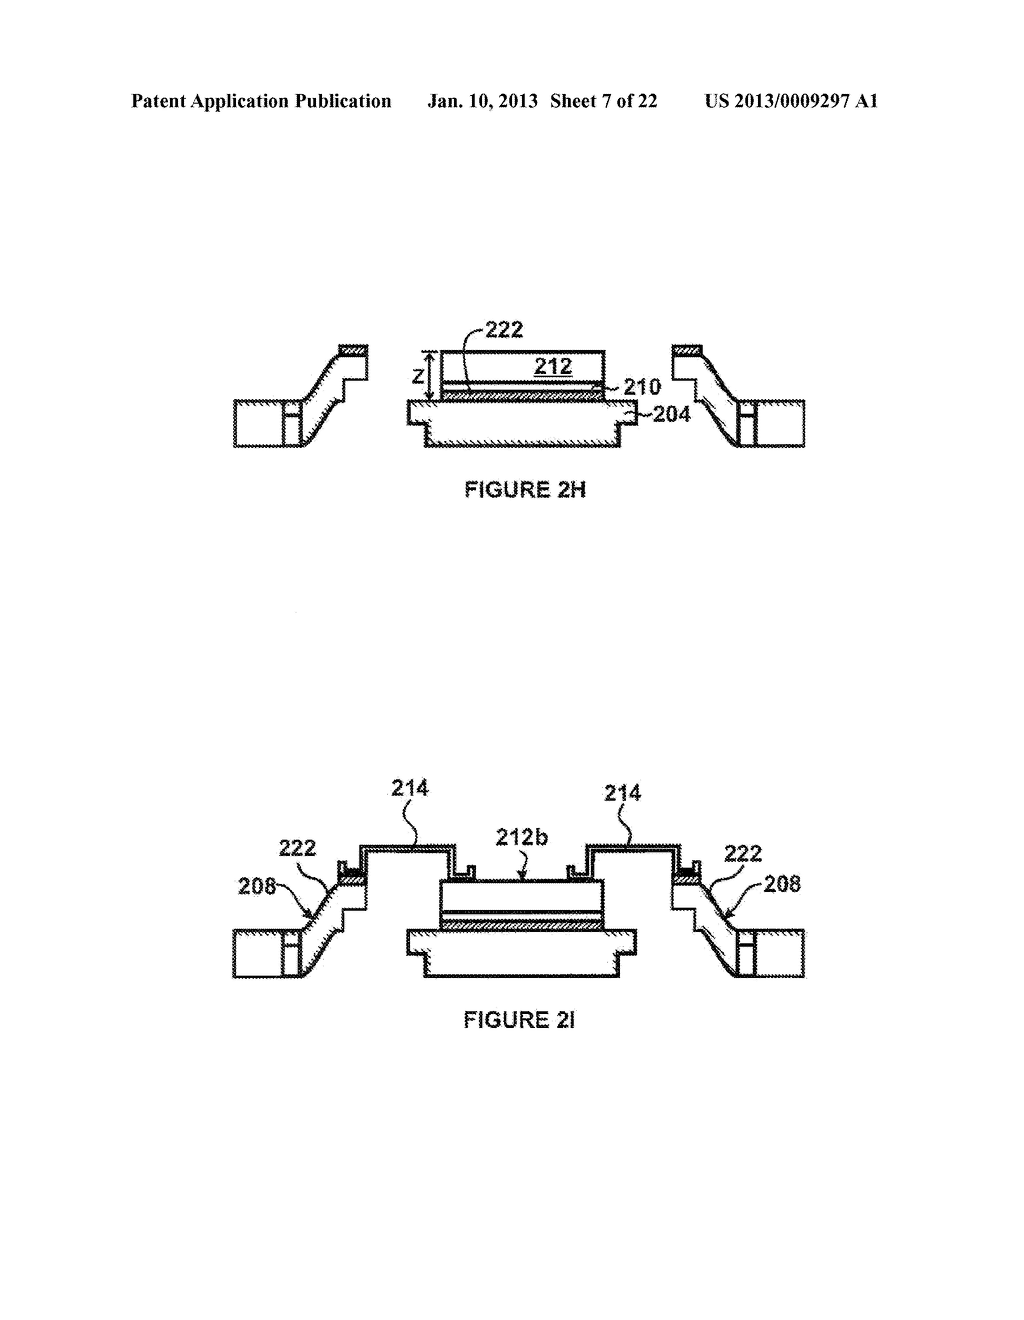 SEMICONDUCTOR DEVICE PACKAGE HAVING CONFIGURABLE LEAD FRAME FINGERS ...